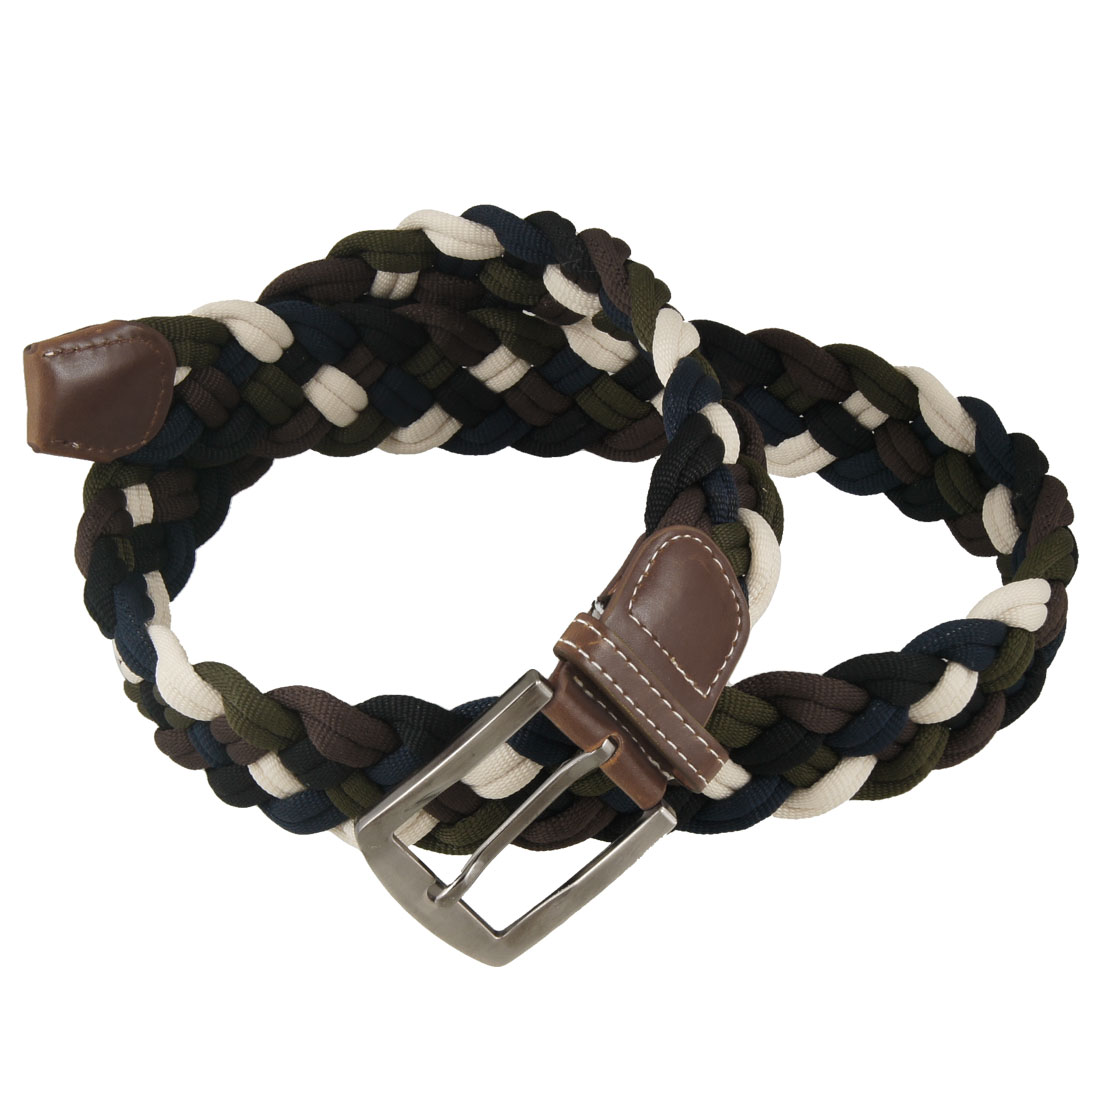 4cm Width Metal Single Pin Buckle Beige Black Polyester Braided Belt for Lady